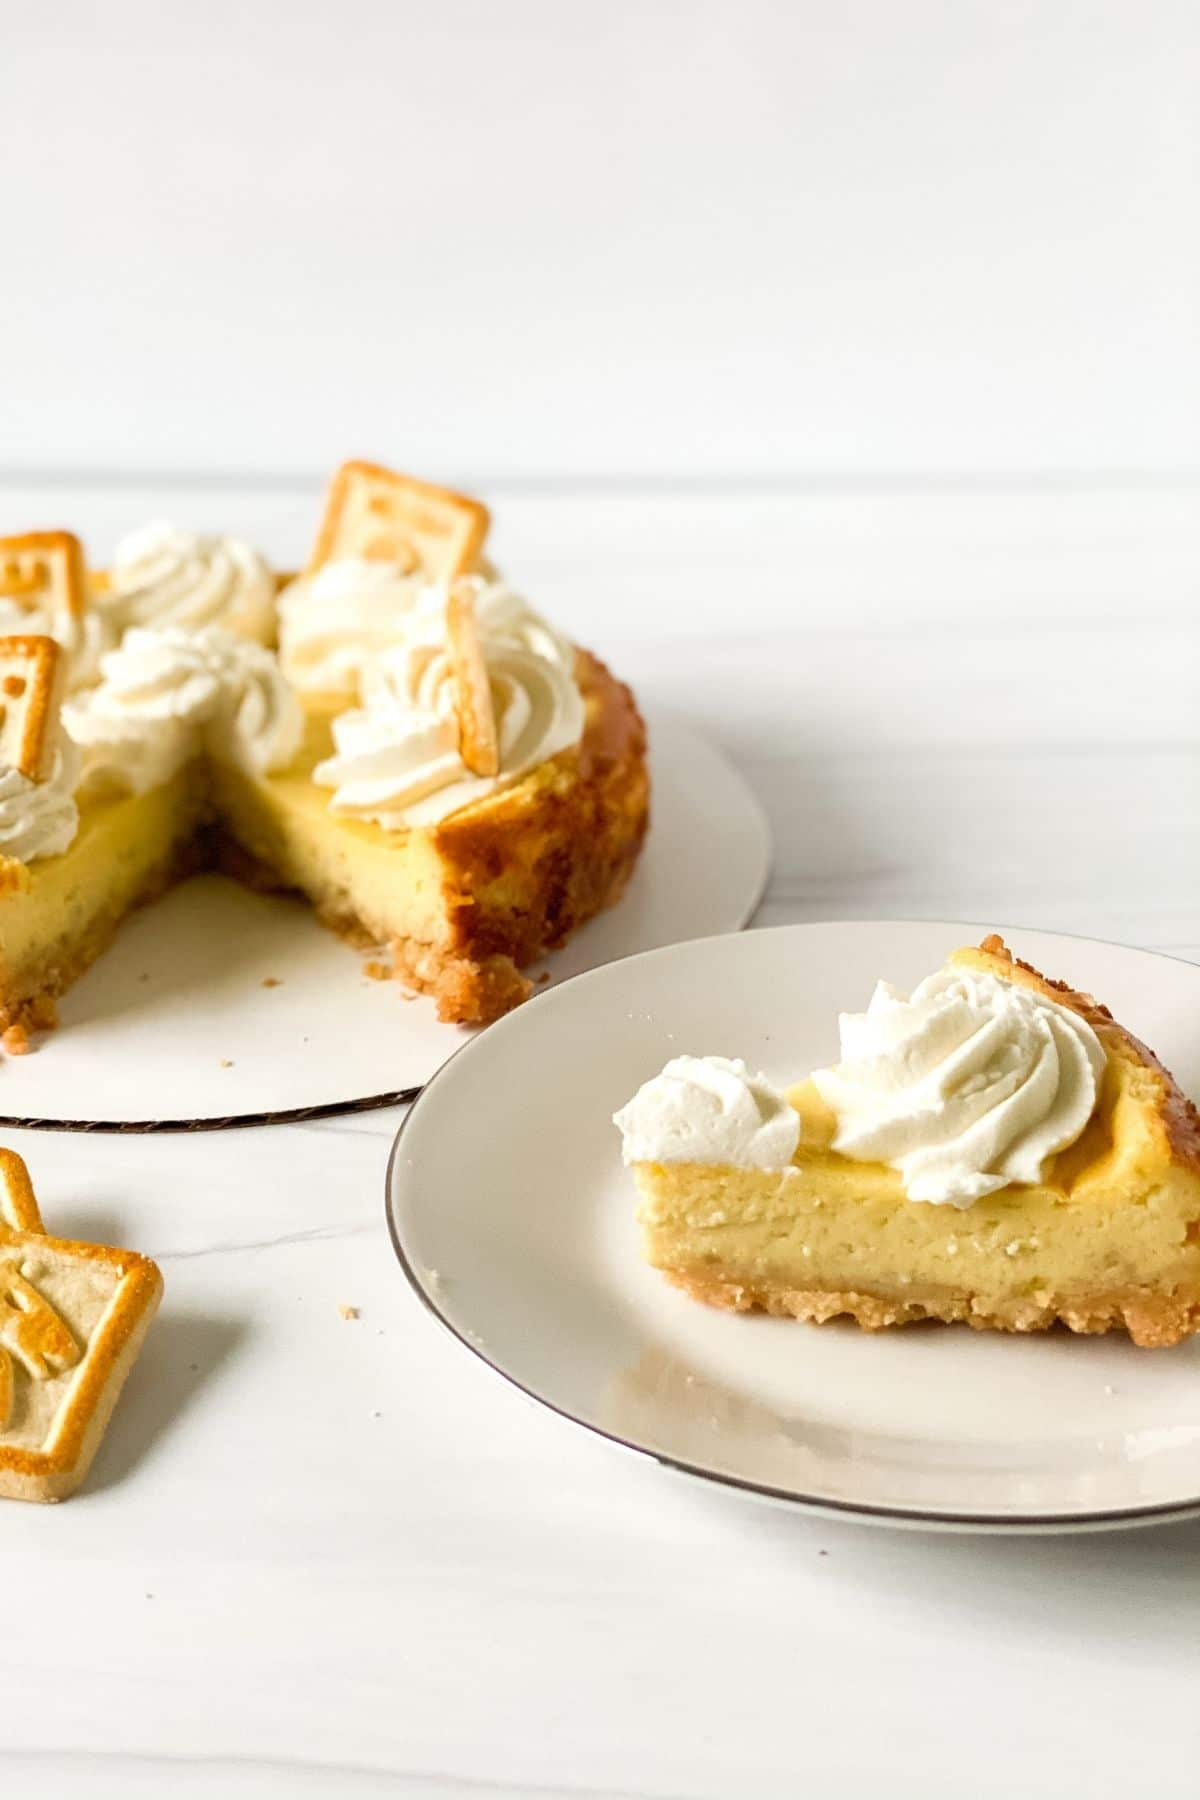 Slice of banana pudding cheesecake